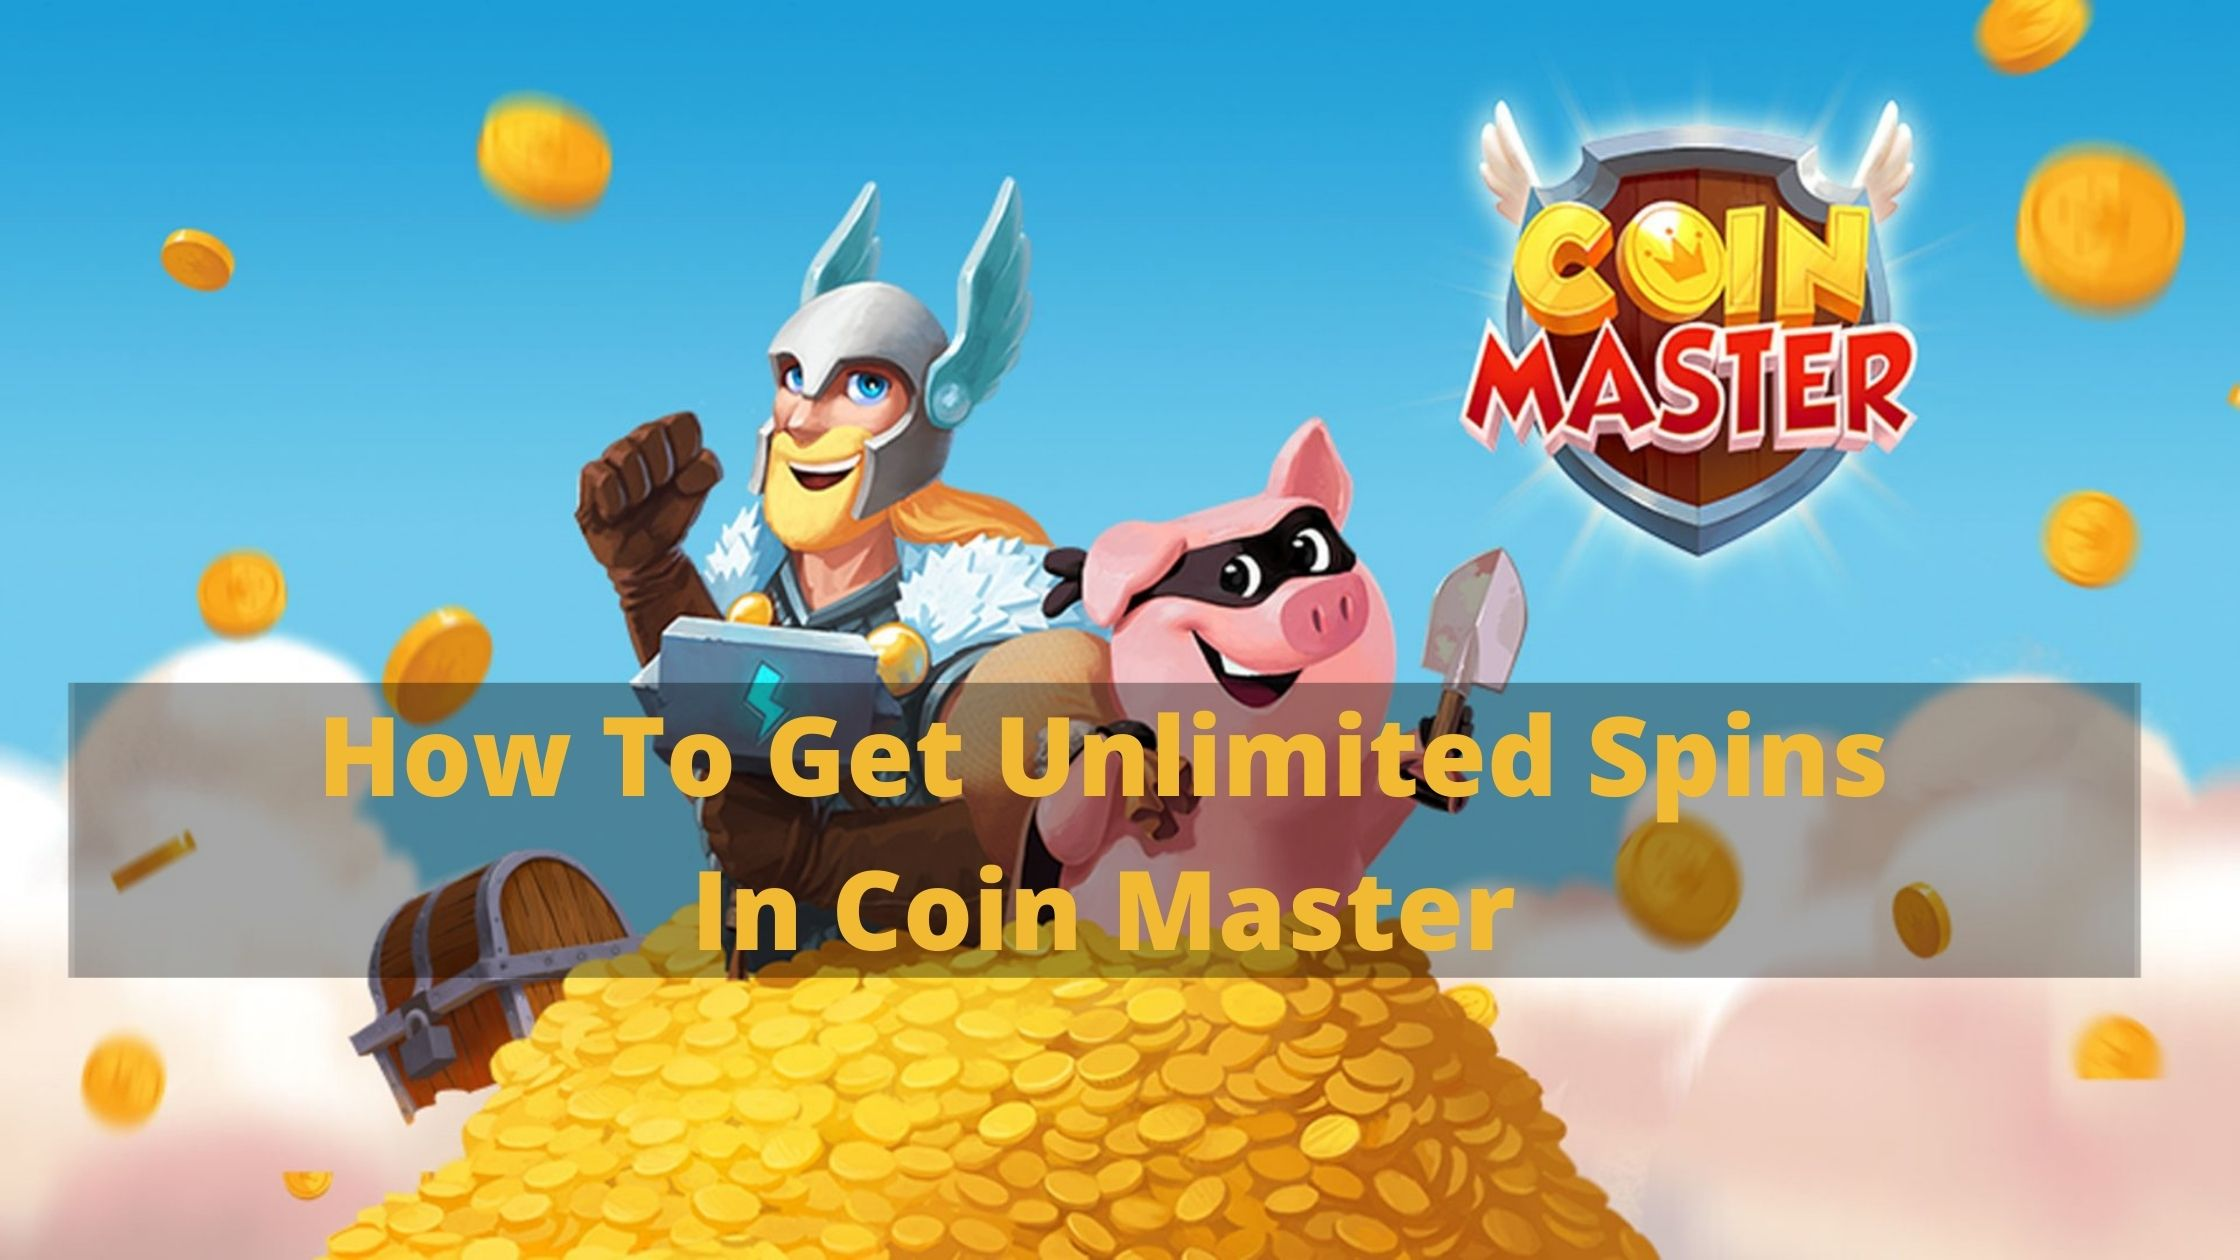 How To Get Unlimited Spins in Coin Master